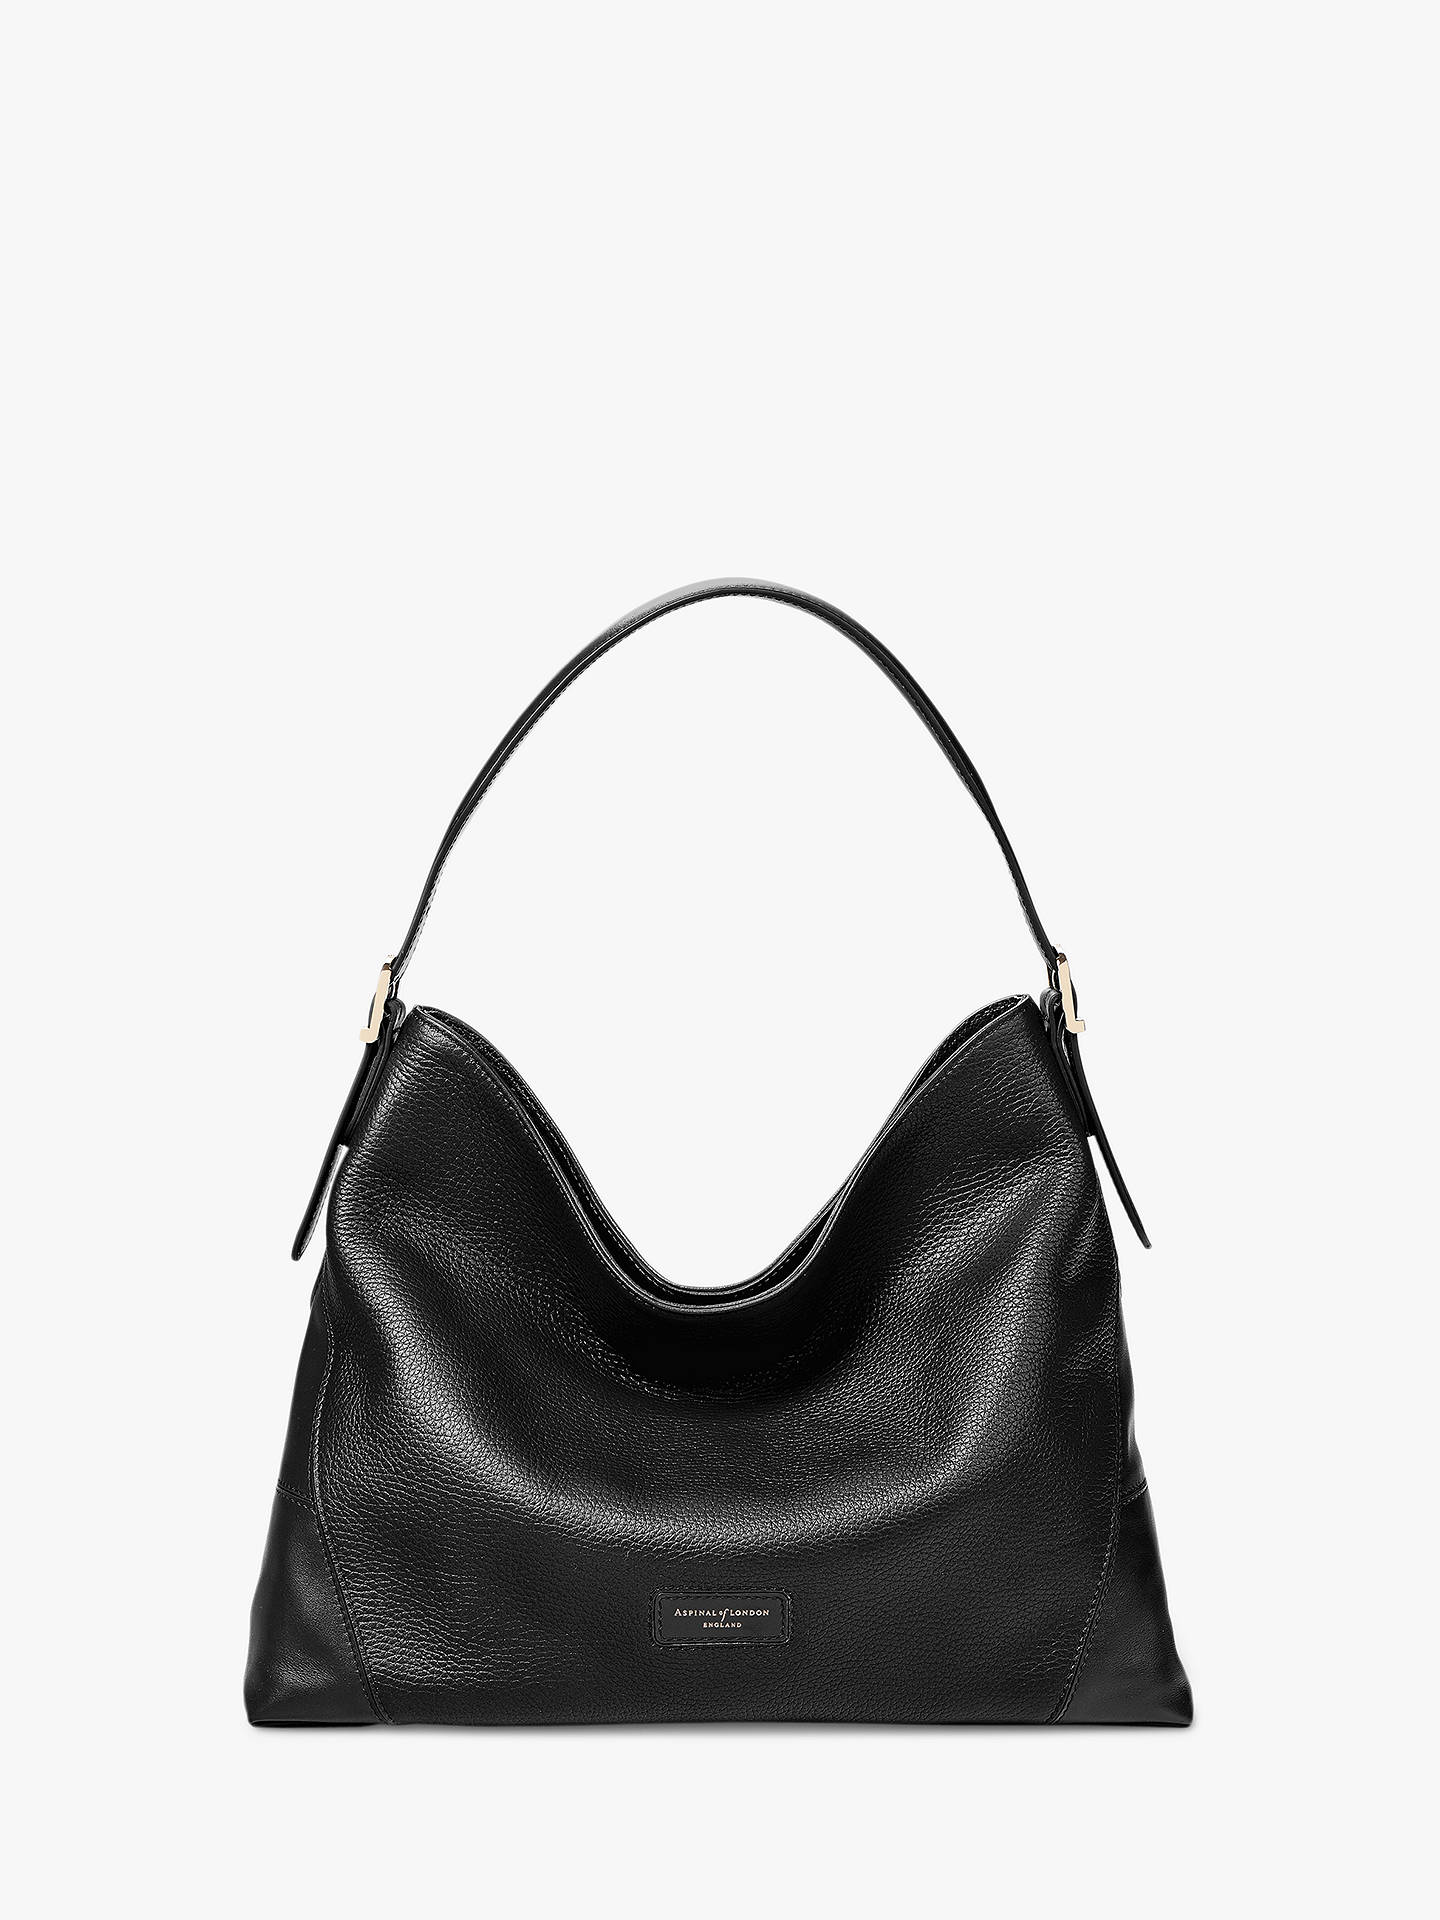 5c1ec984275 Aspinal of London Small Leather Hobo Bag at John Lewis   Partners